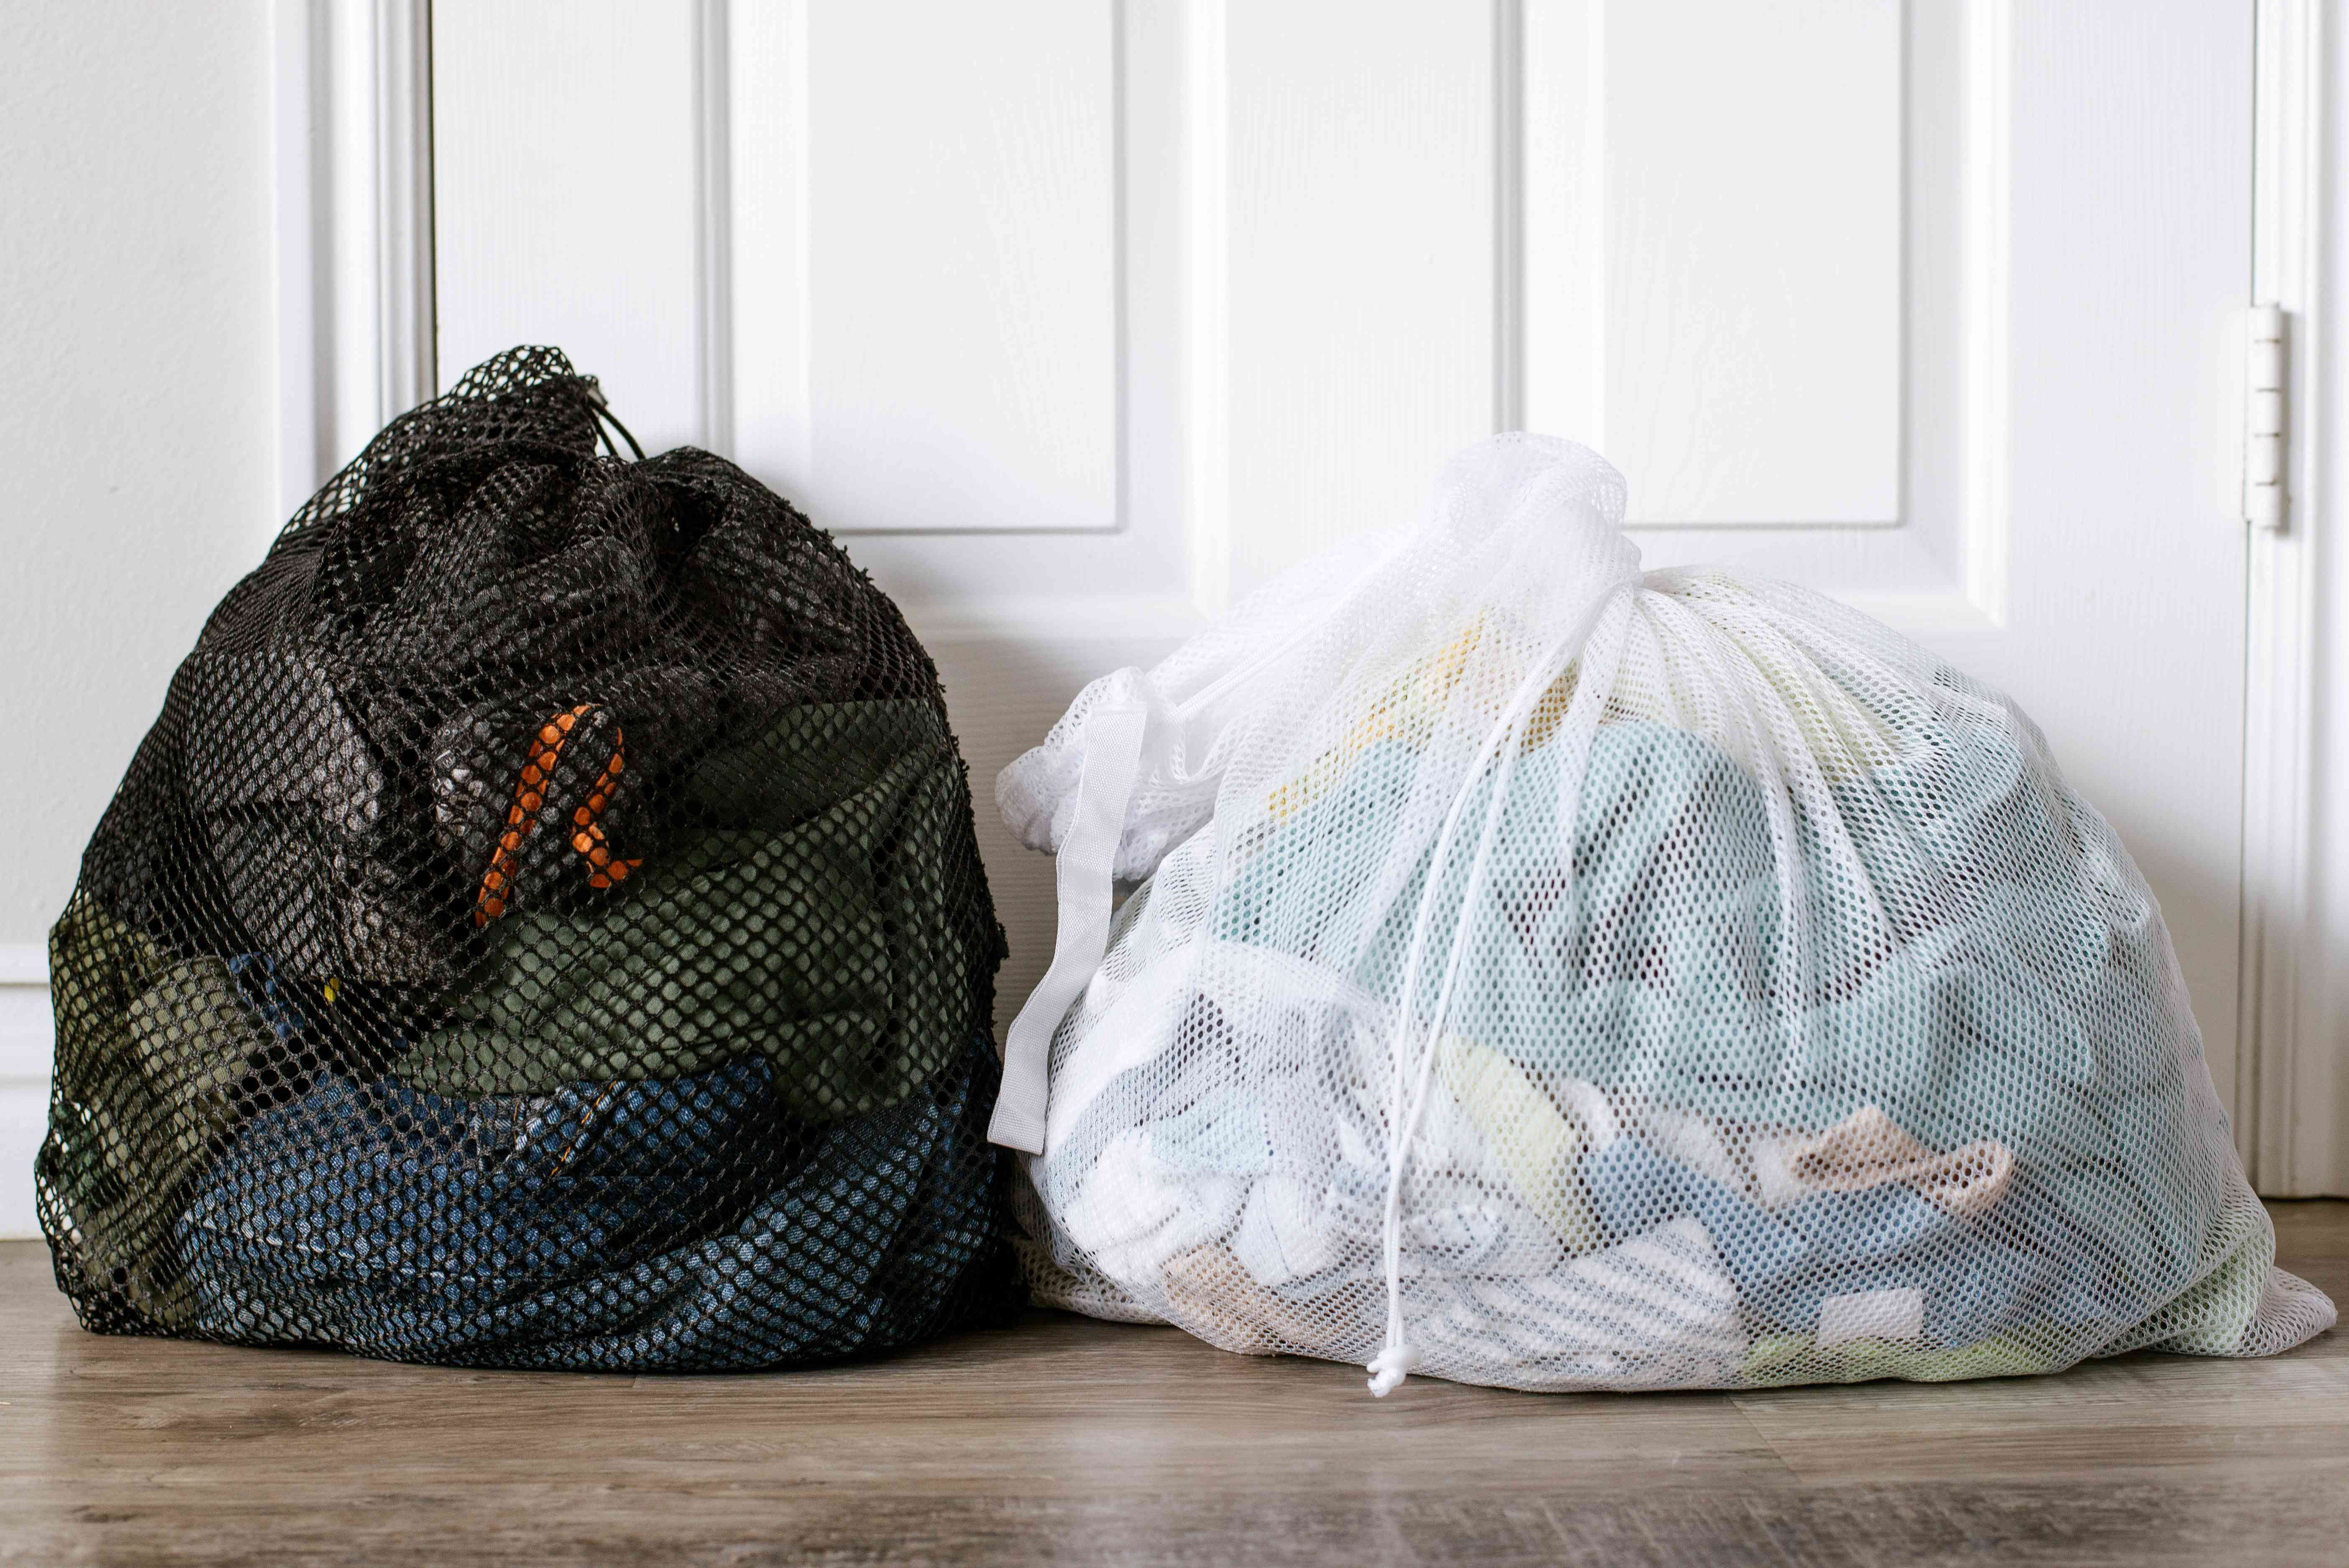 Clothes sorted in separate white and black laundry mesh bags for laundromat